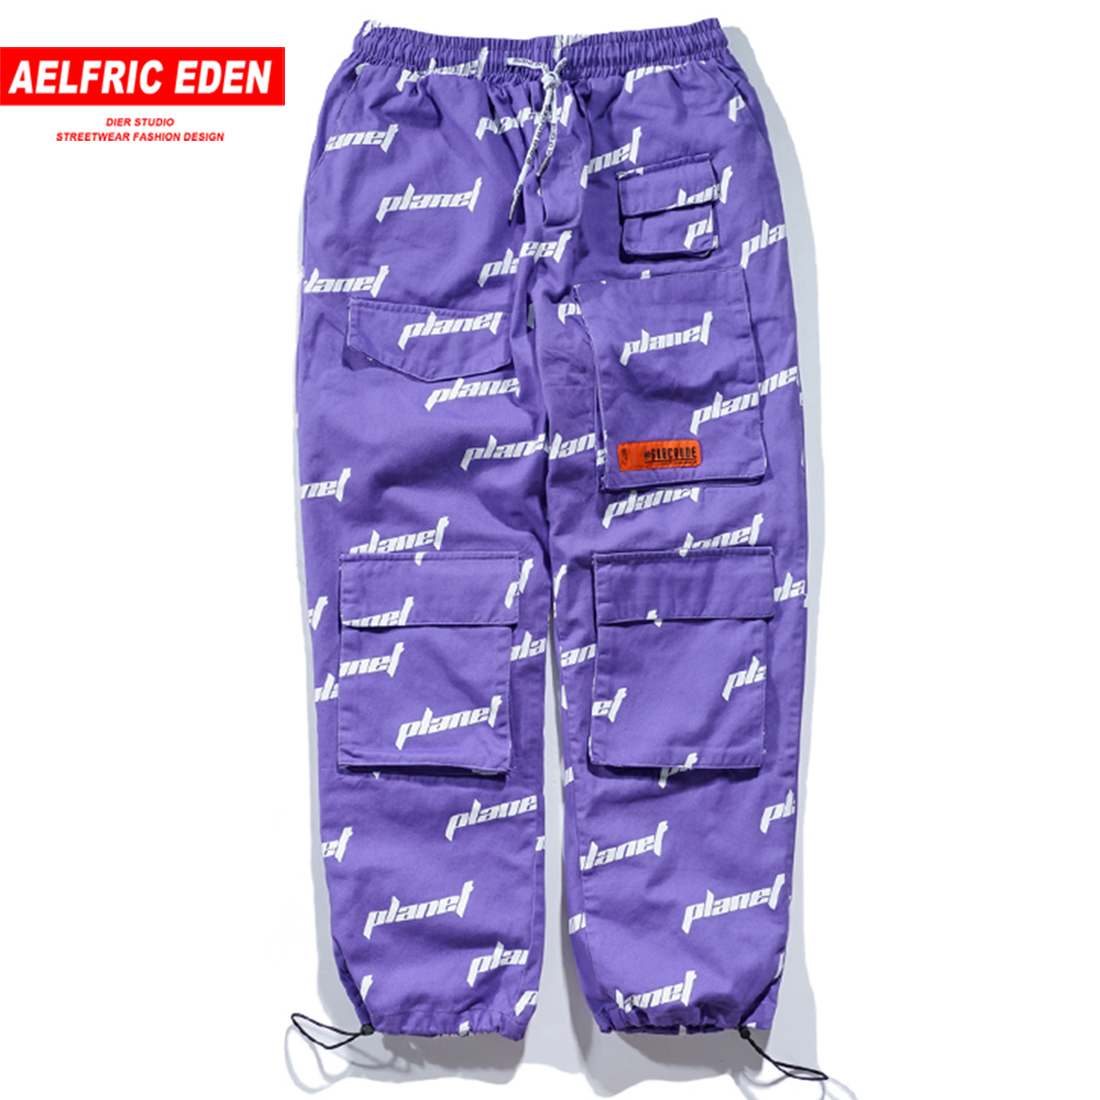 Aelfric Eden High Street 2018 Men's Pockets Decorative Lettter Streetwear Casual Baggy Pants Mens Hip Hop Harajuku Trousers B058